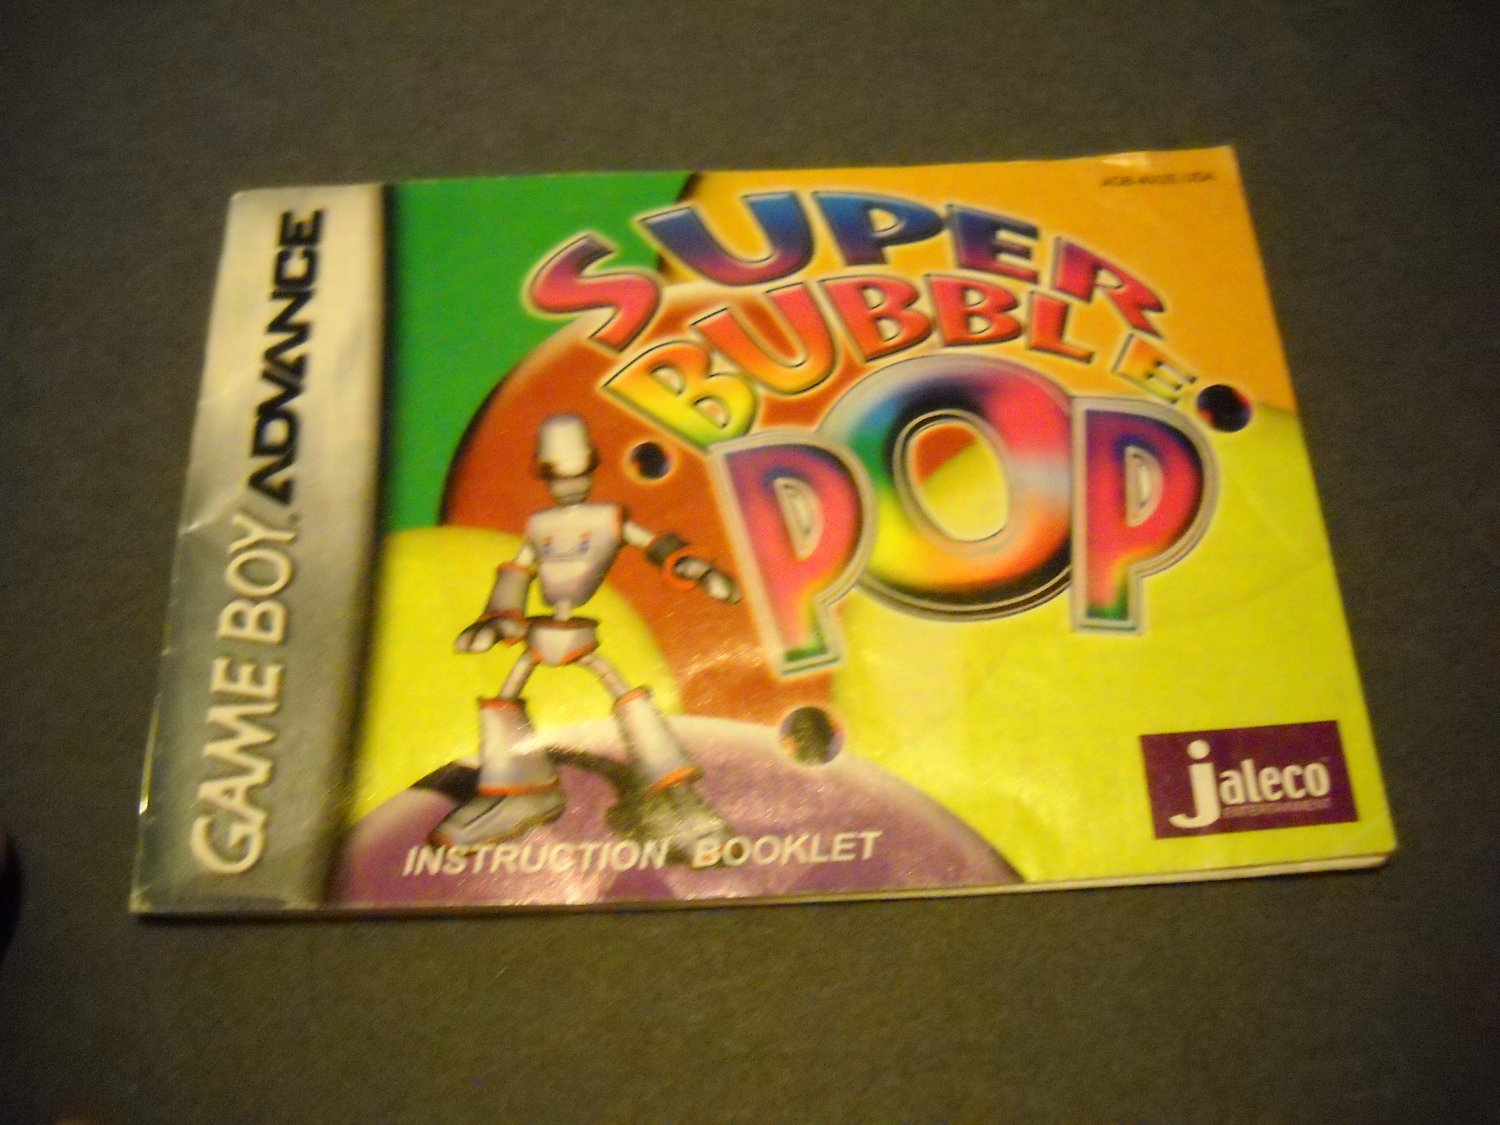 Manual ONLY ~  for Super Bubble Pop  Gameboy Advance